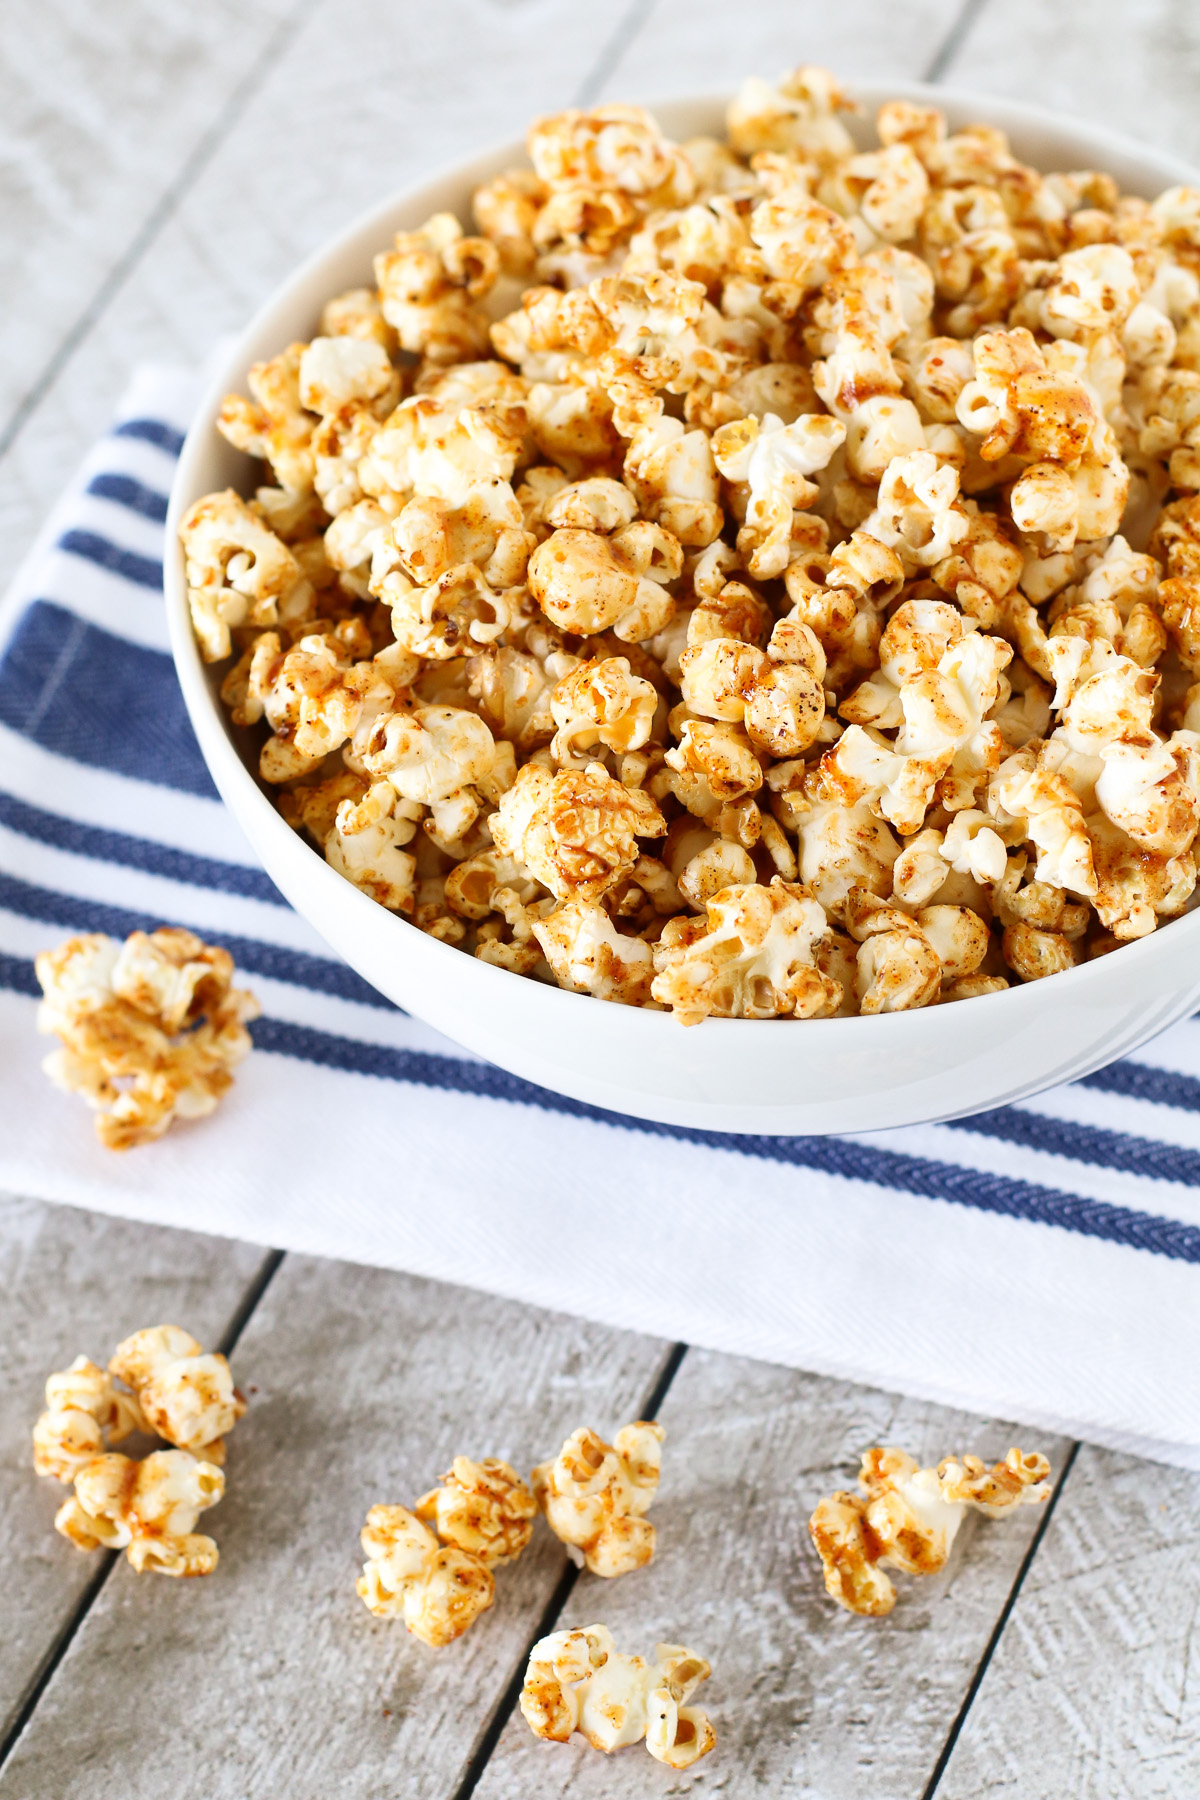 Smokey Maple Popcorn. Made with pure maple syrup, coconut oil and smokey spices, this popcorn is totally addicting!